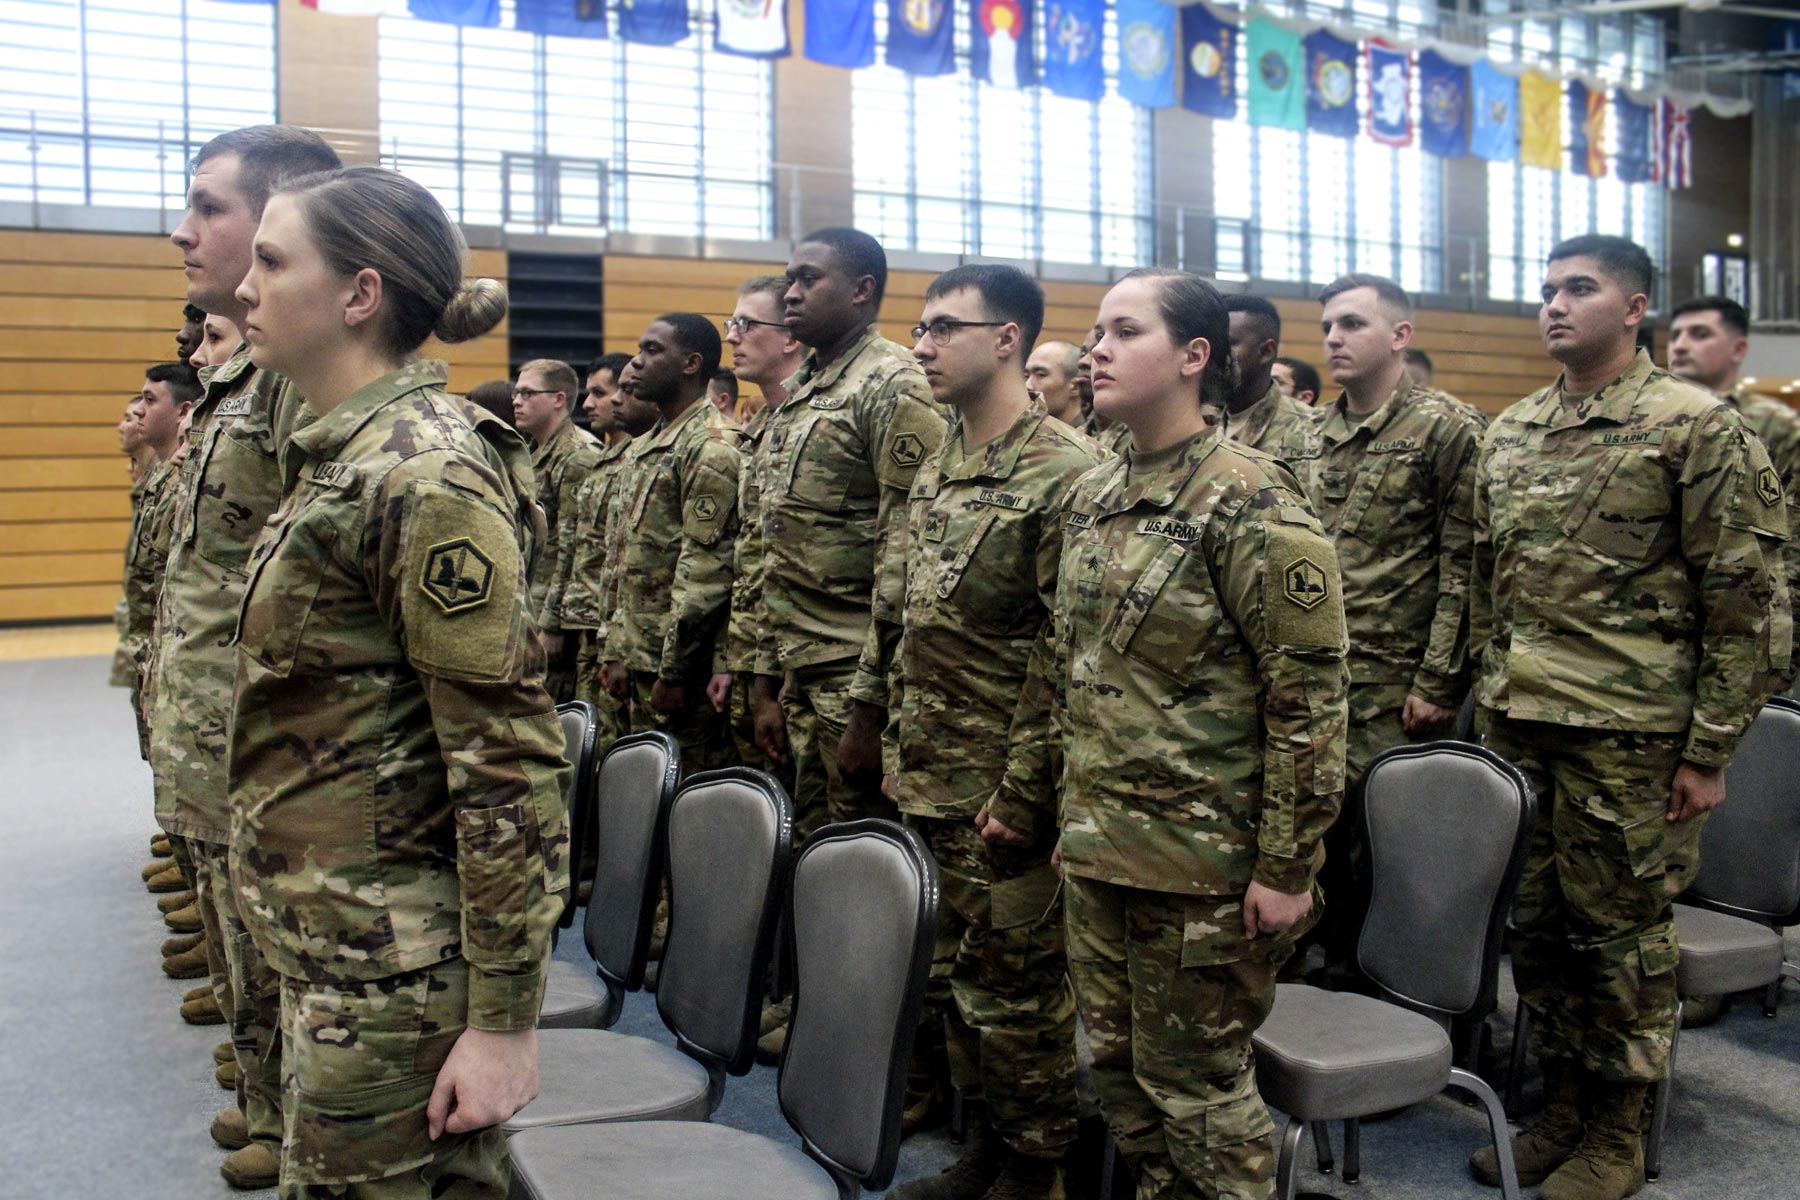 army u0026 39 s new promotion system could mean separations for